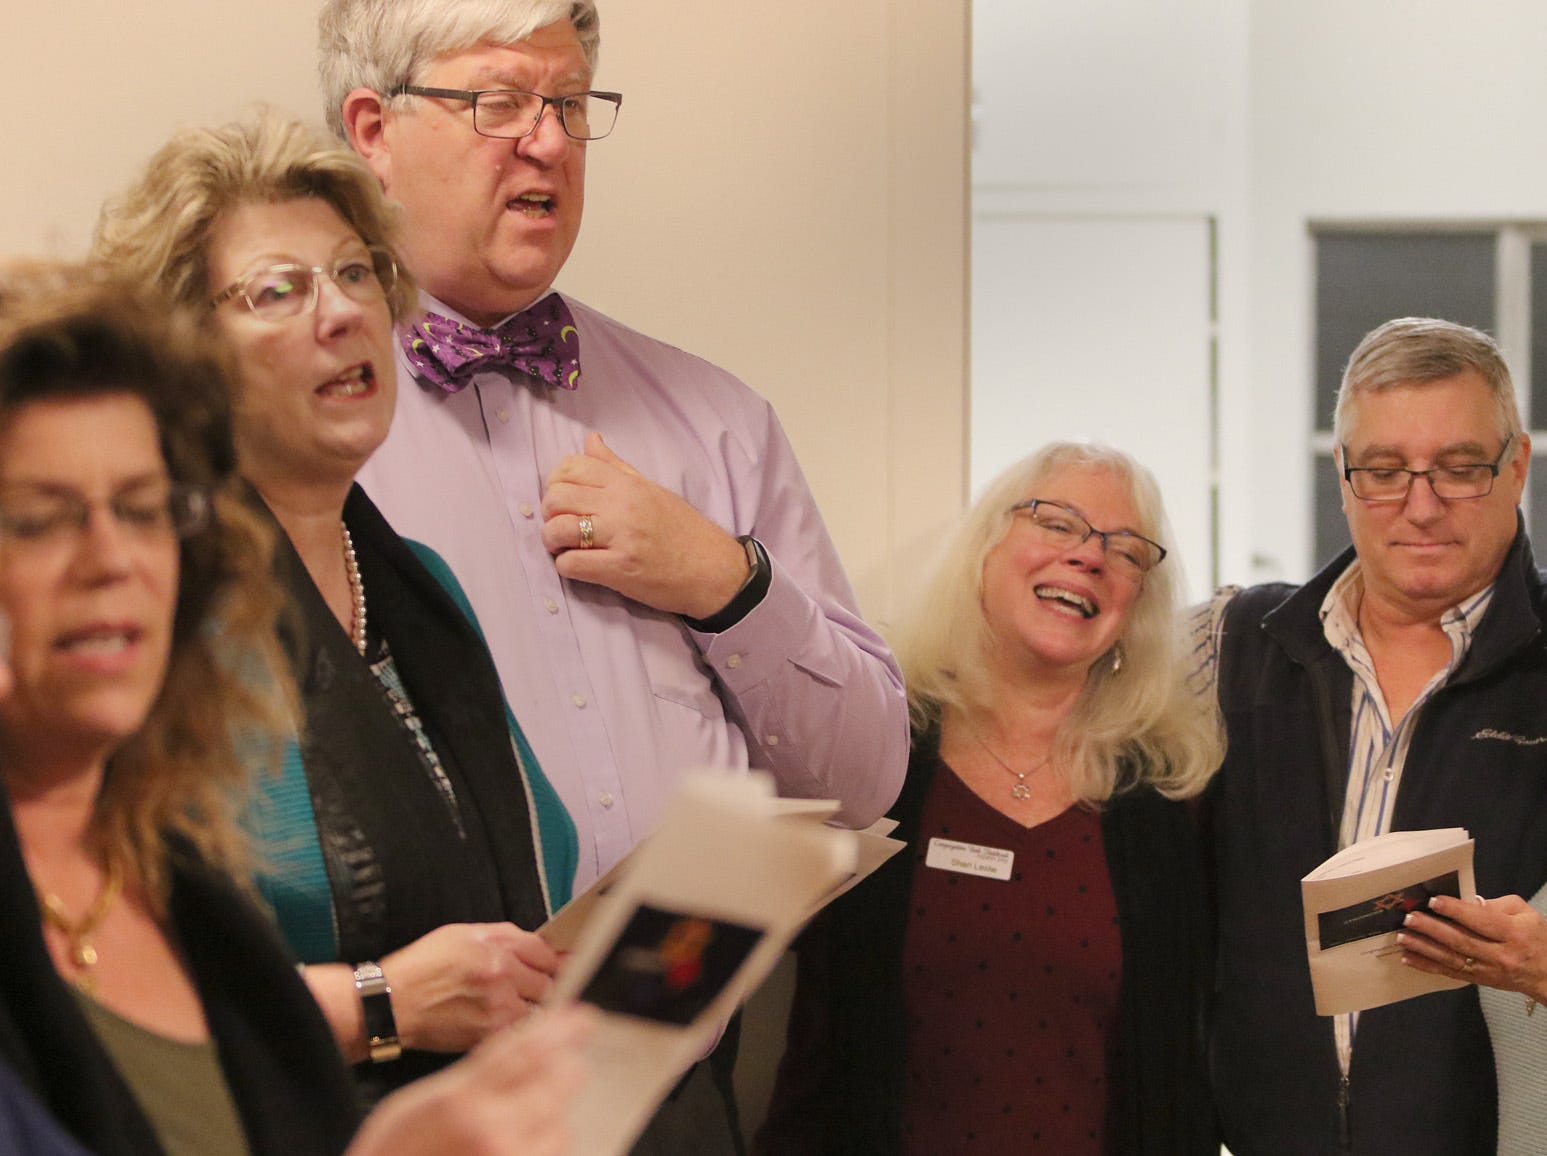 """The Beth Hatikvah (House of Hope) Synagogue in Bremerton held a memorial service for the Tree of Life Synagogue shootings Tuesday night in Bremerton. Joining in singing """"This Little Light of Mine"""" at right are, Sharil Leslie, left, and David and Bari Udell."""